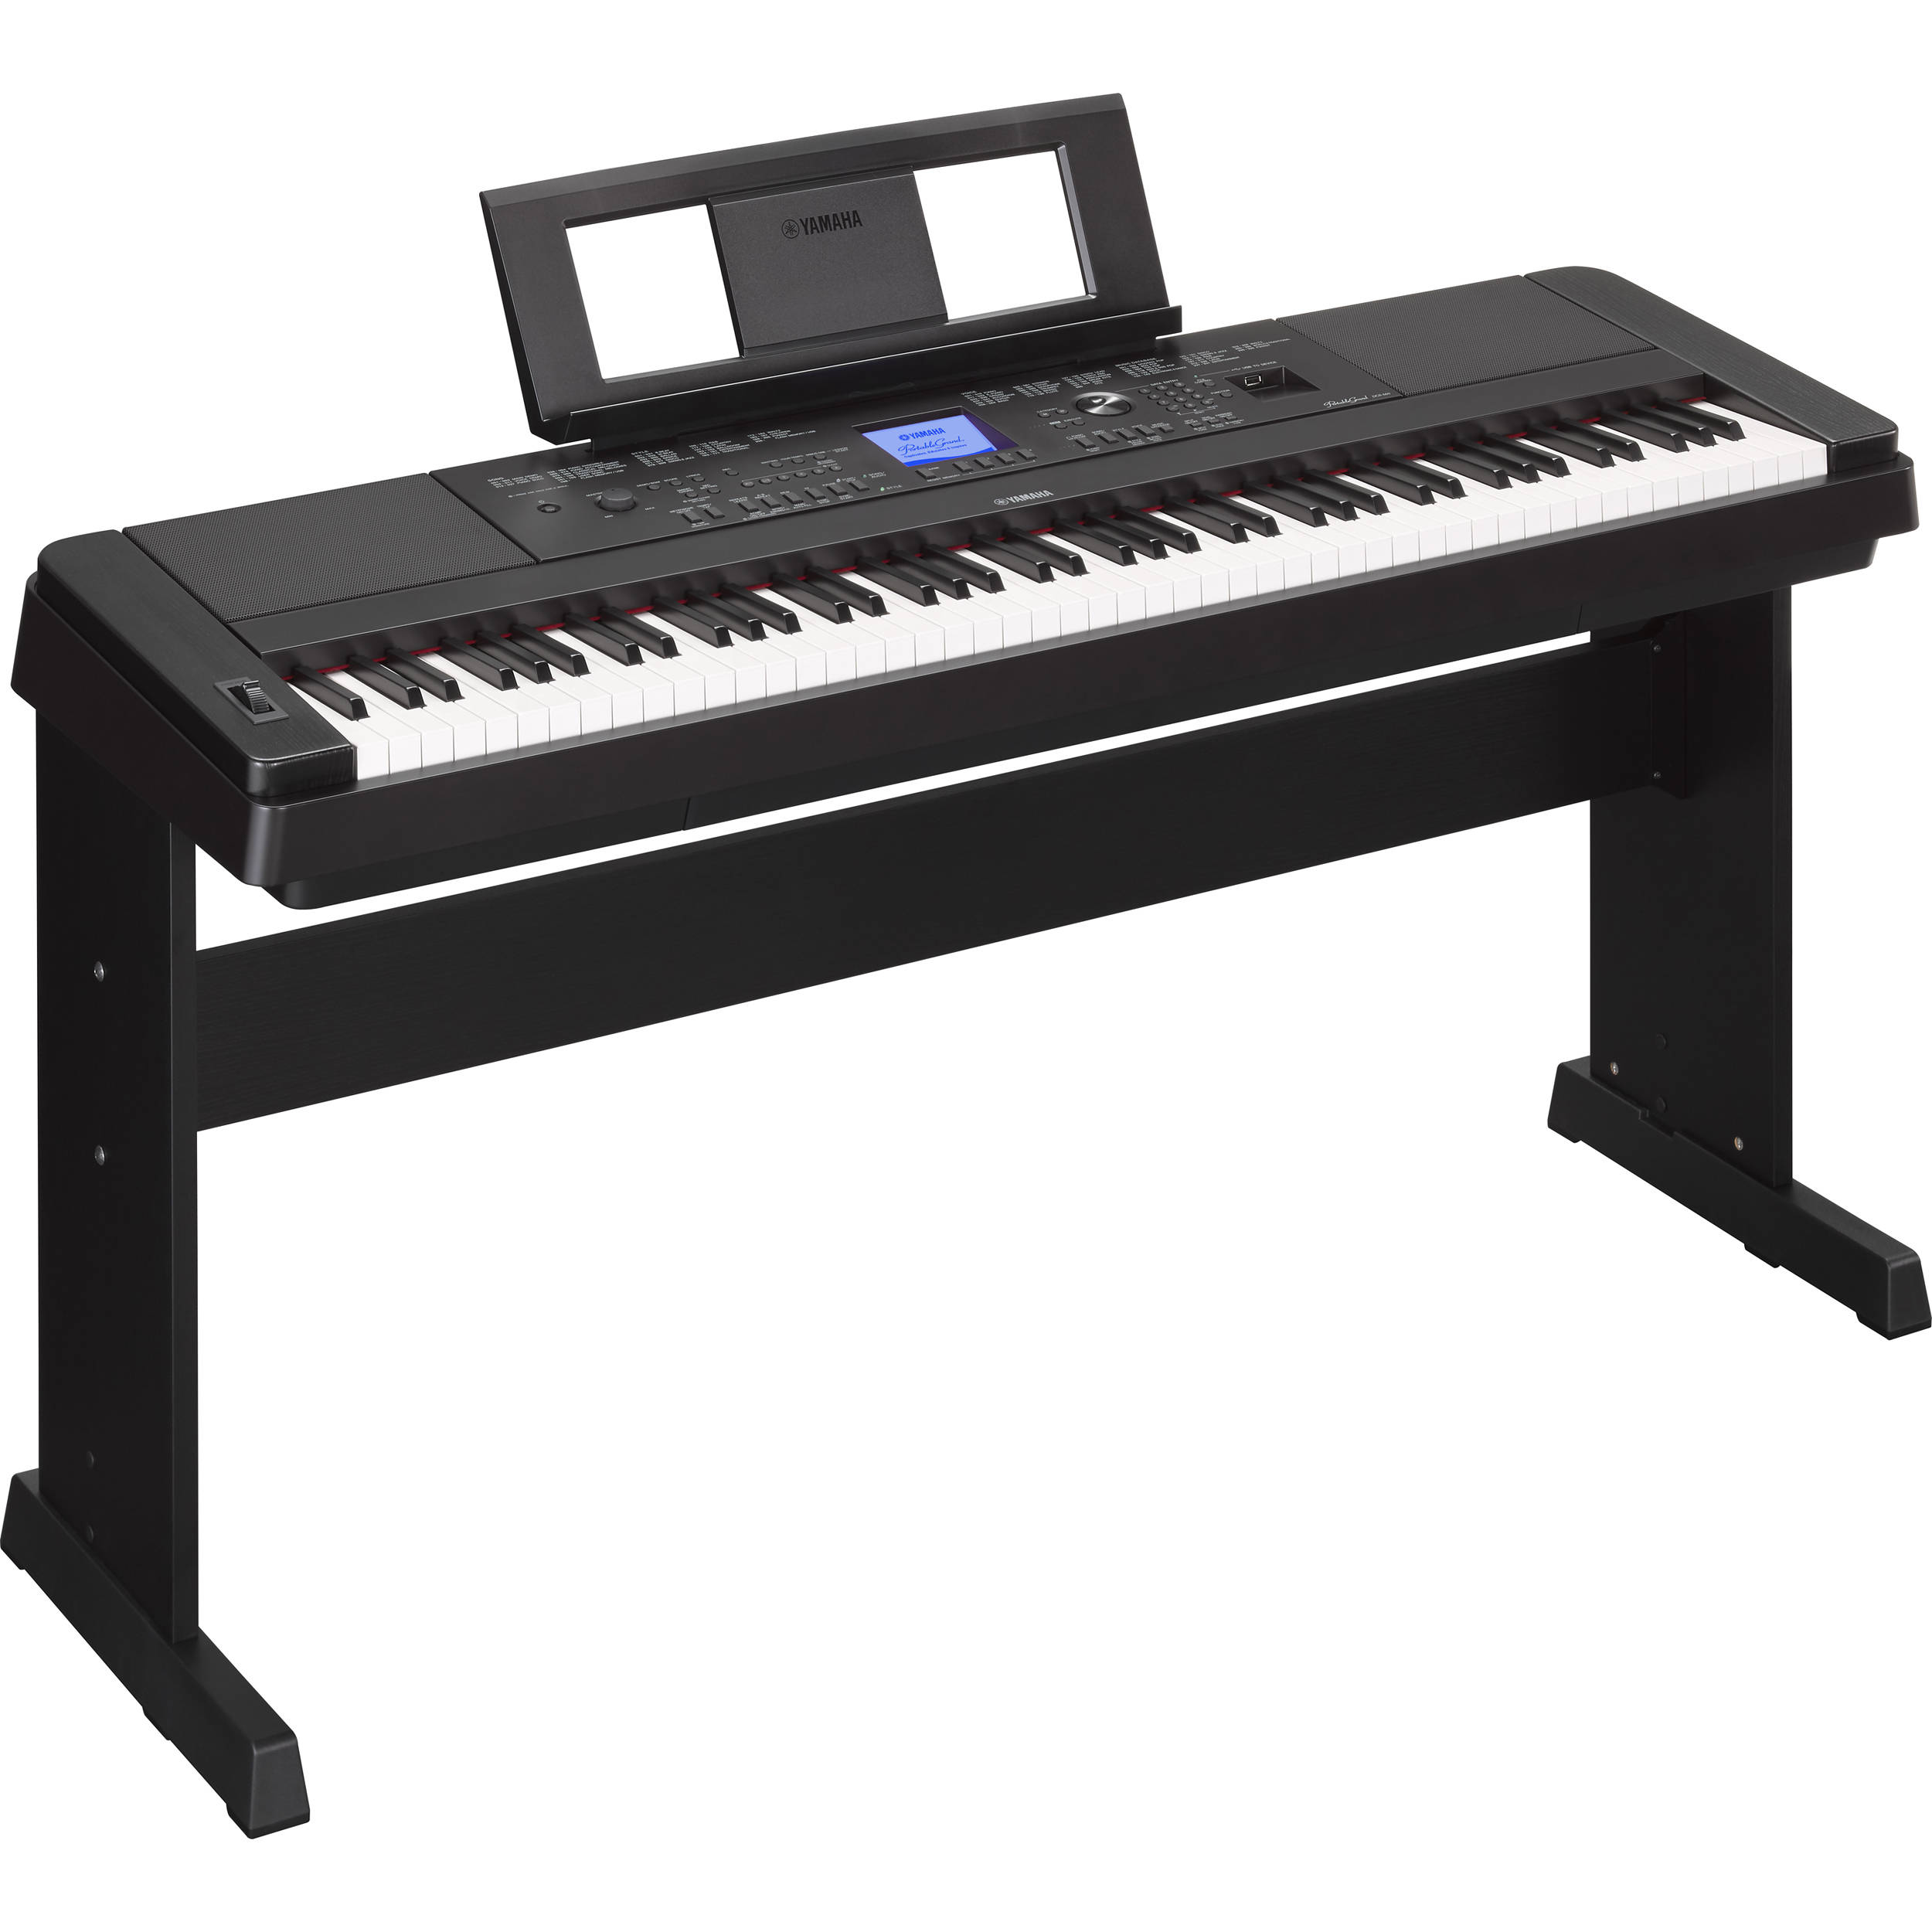 Yamaha dgx 660 portable grand digital piano black for Yamaha piano com